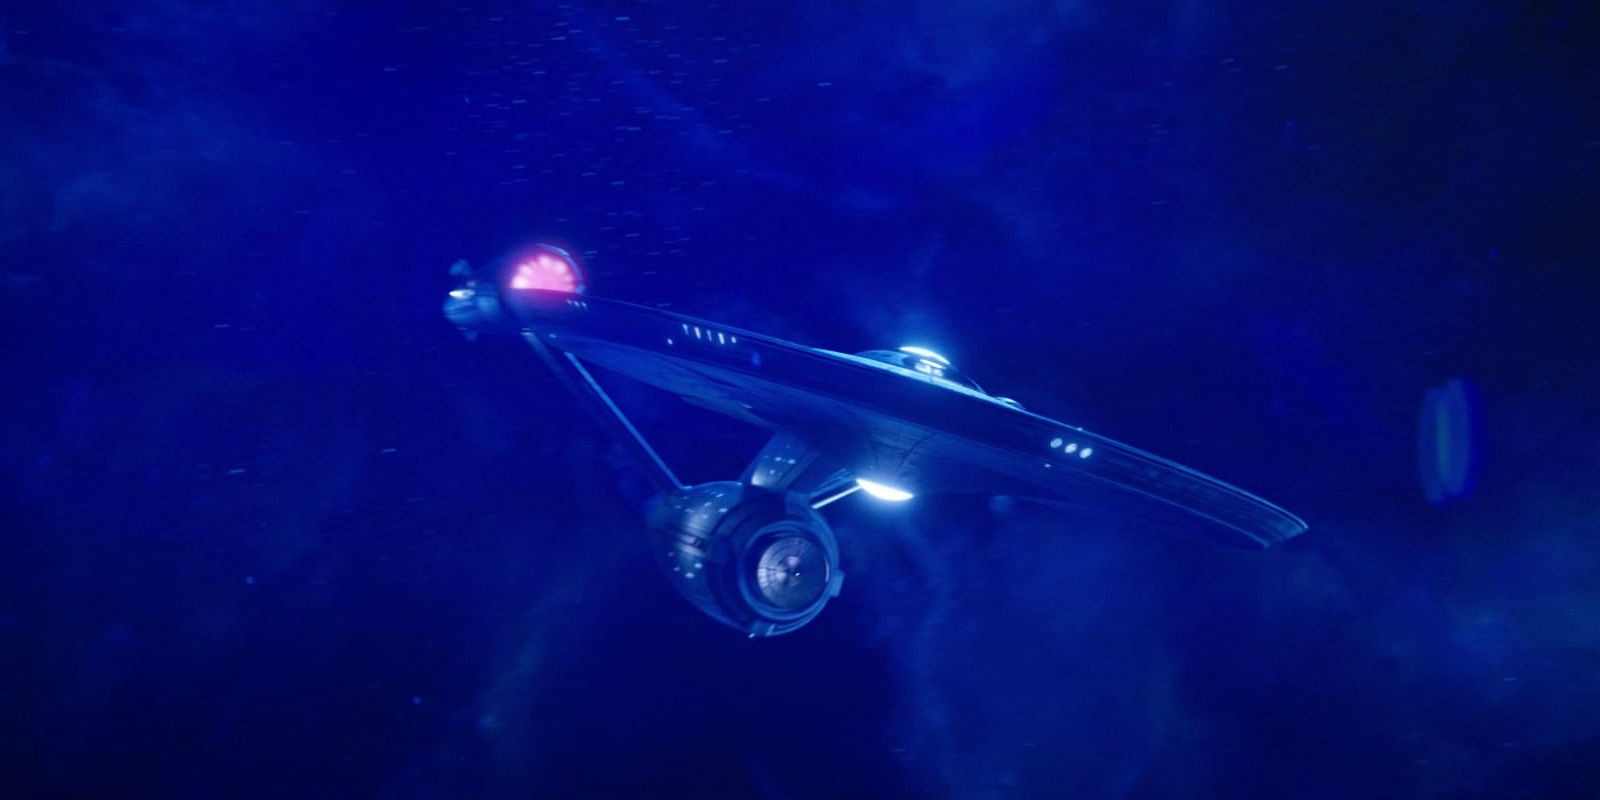 The Enterprise in Star Trek Discovery